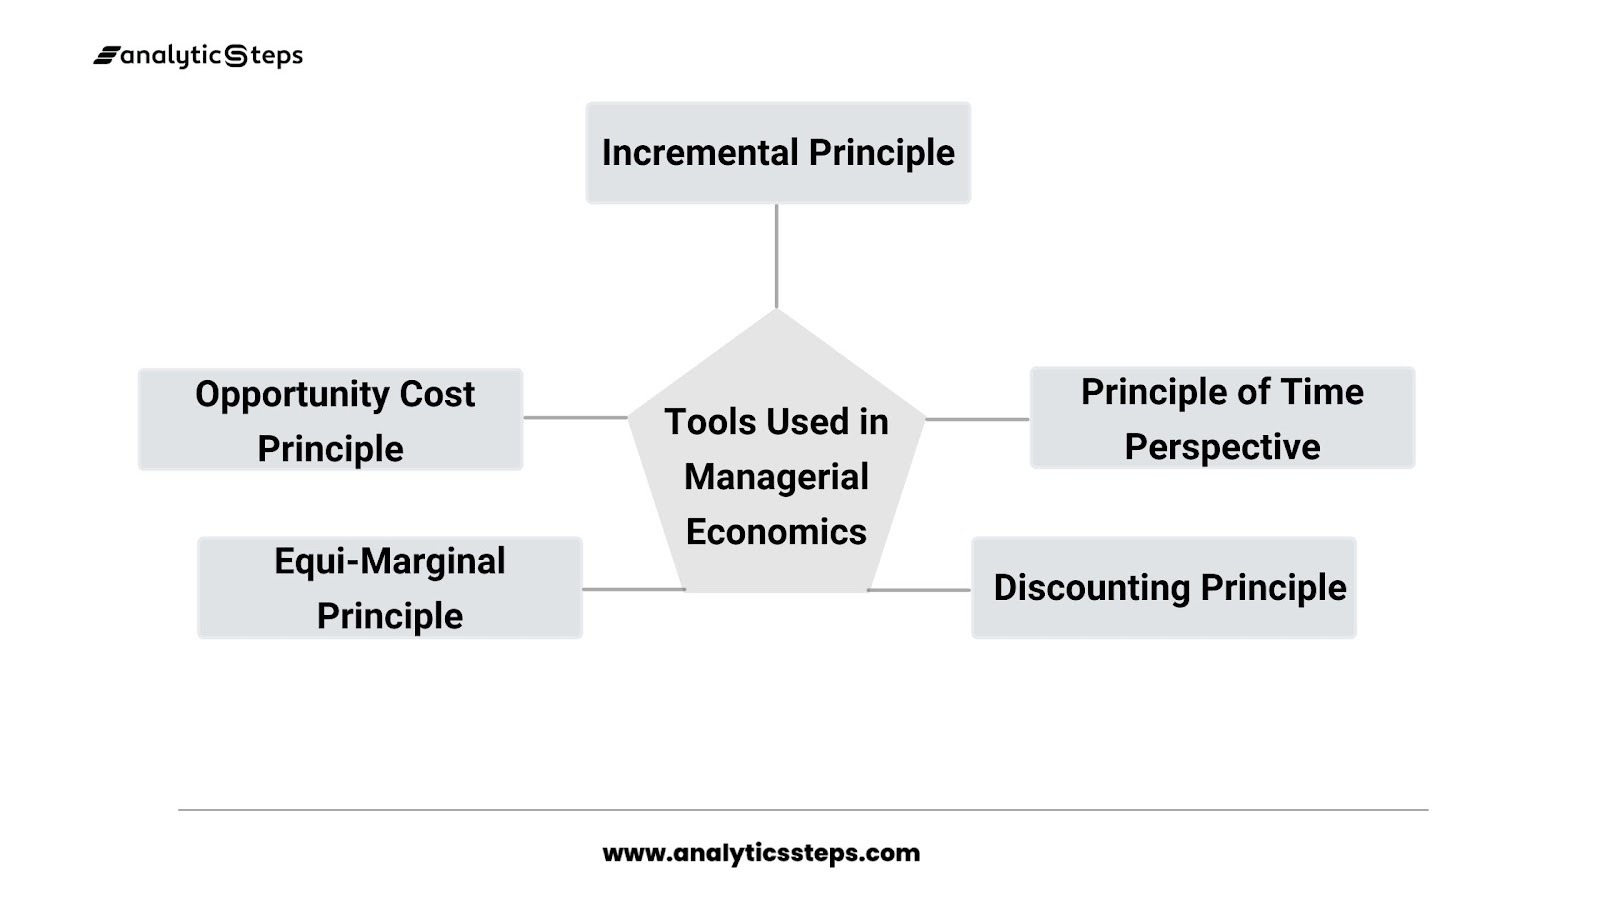 Managerial economics uses some economic tools that are opportunity cost principle, incremental principle, principle of time perspective, discounting principle, and Equi-marginal principle.